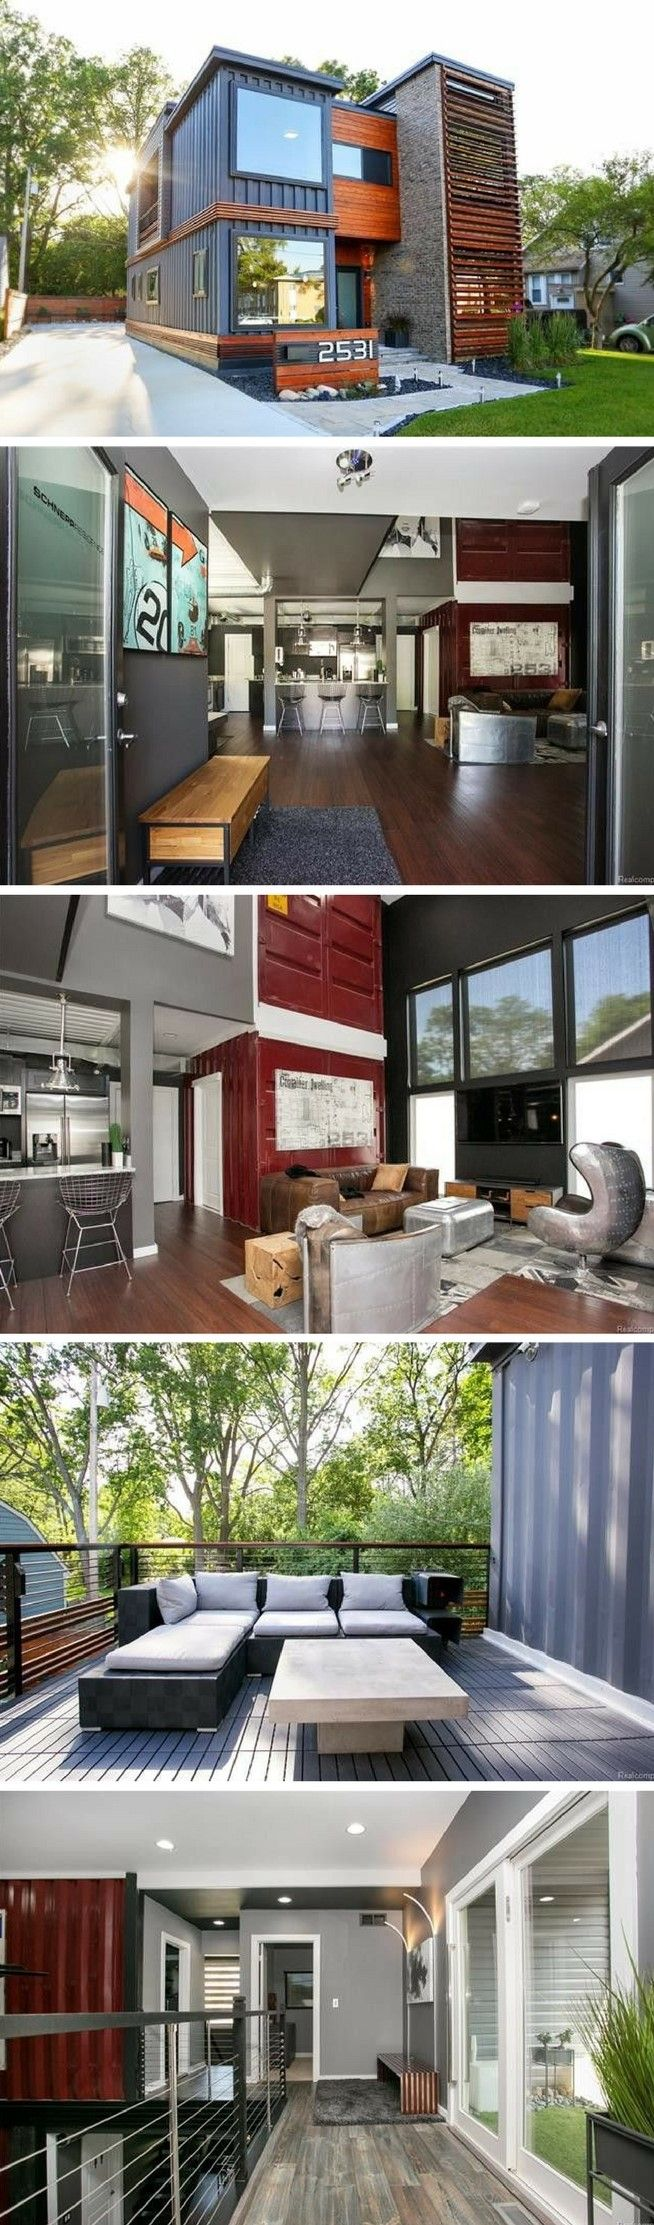 Container house container house royal oak shipping container